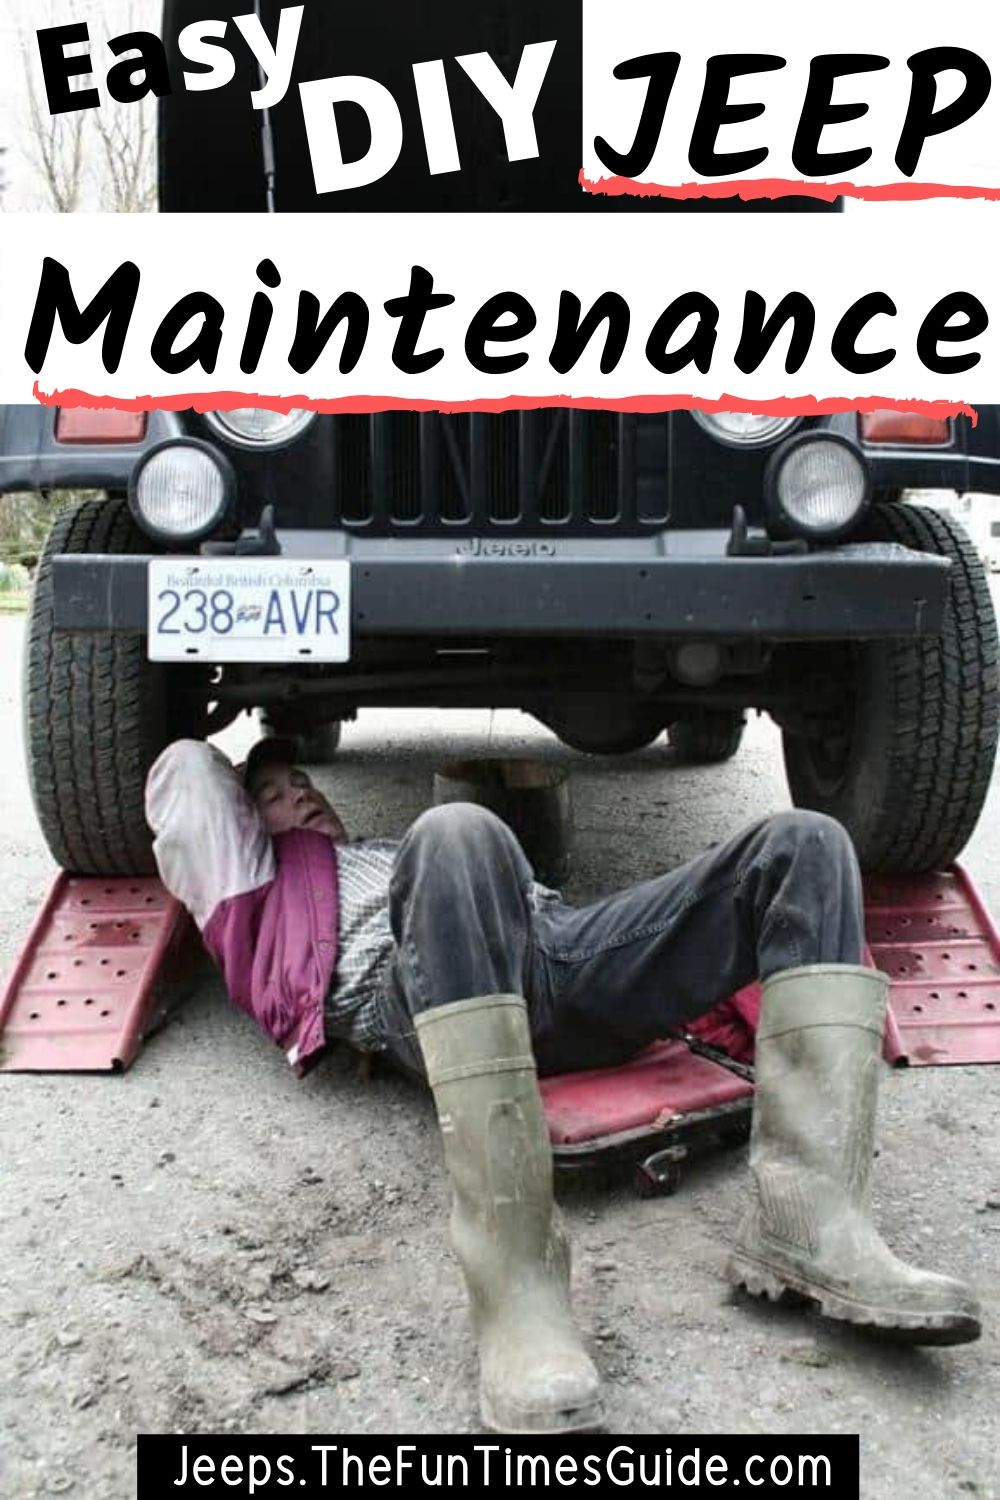 Never Worked On Your Jeep Before? Start With These Easy DIY Jeep Maintenance Tasks